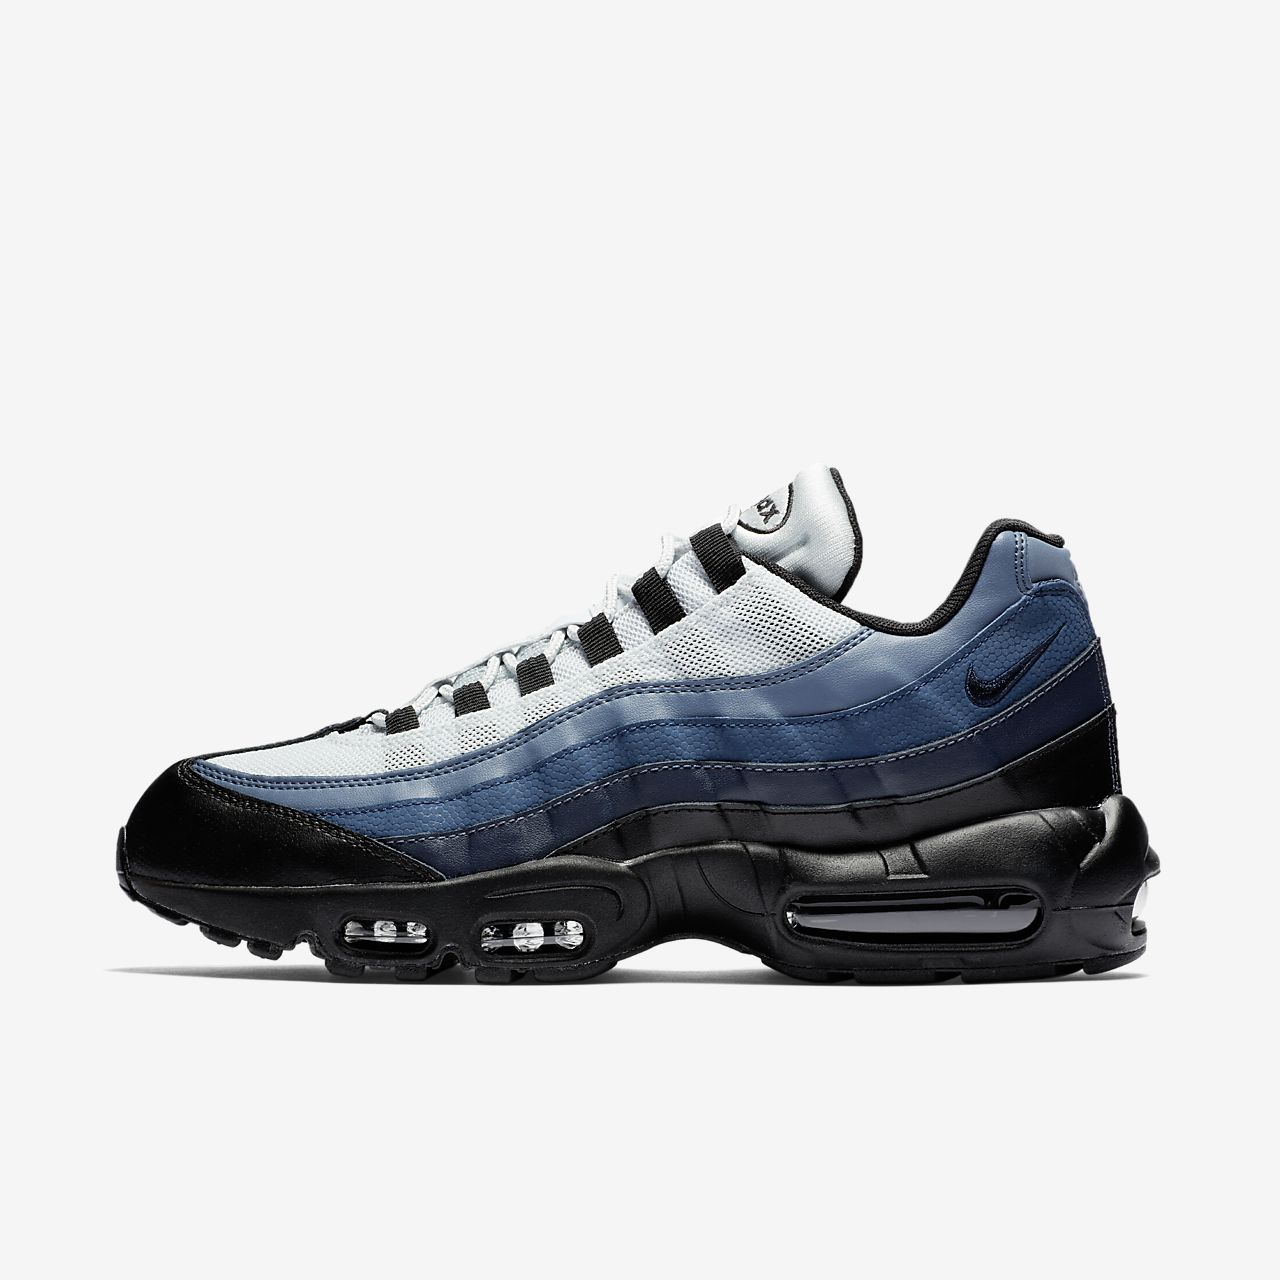 ... Nike Air Max 95 Essential Men's Shoe